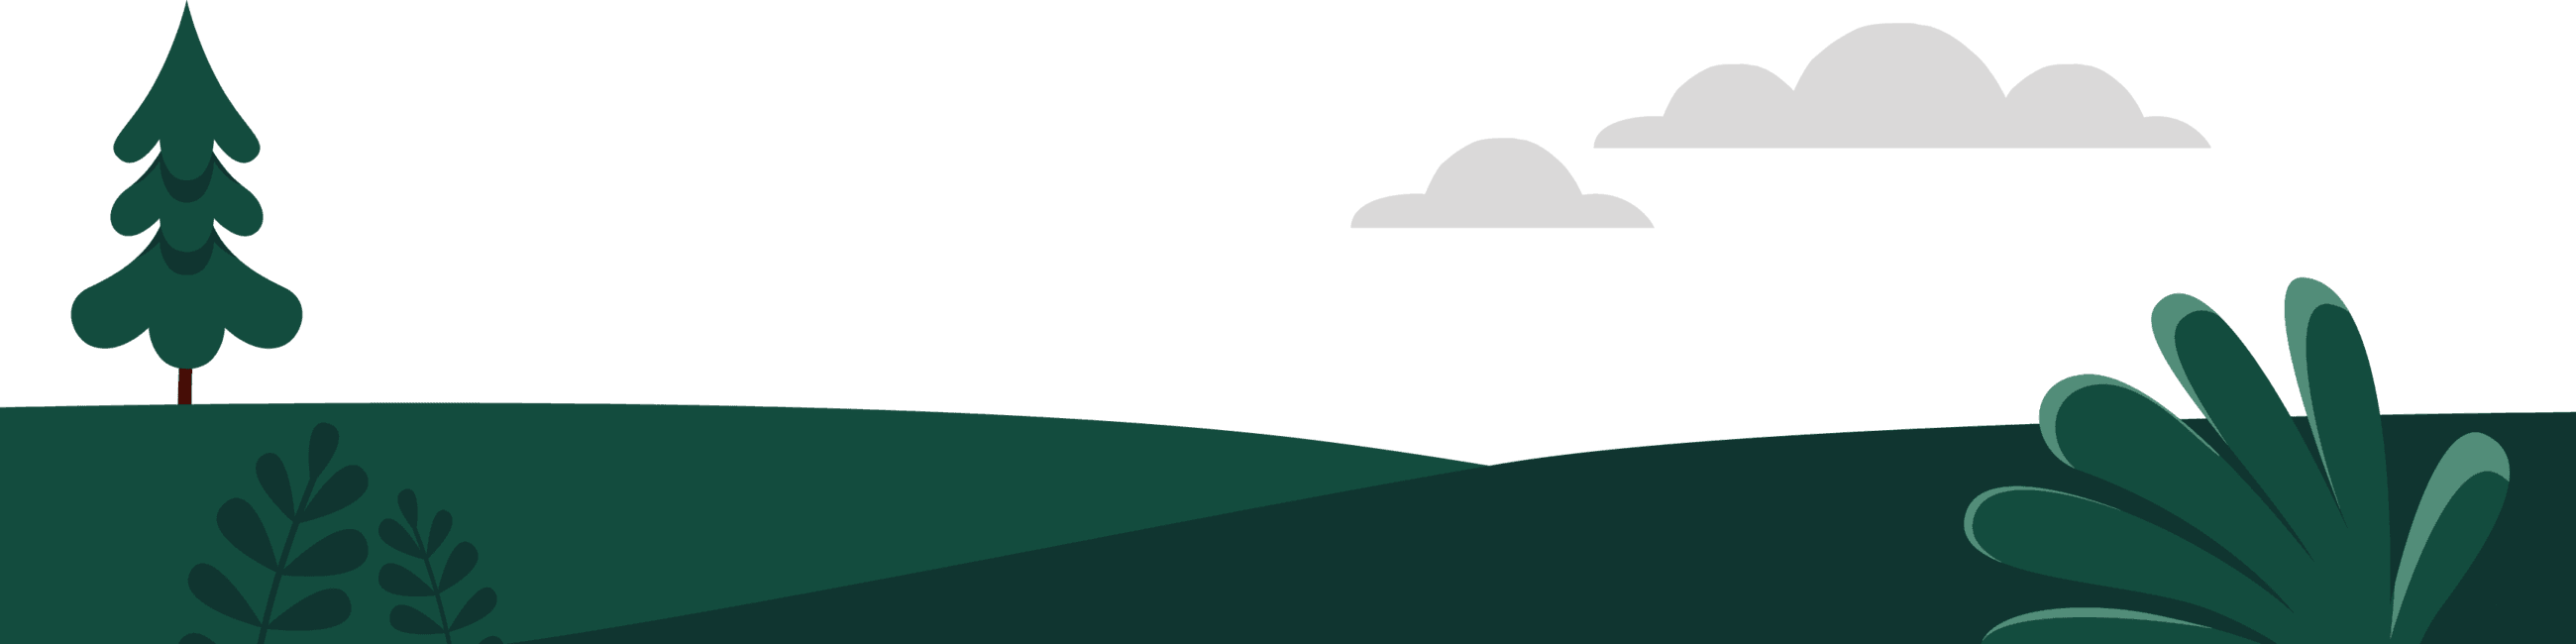 Graphic of hills, trees and clouds